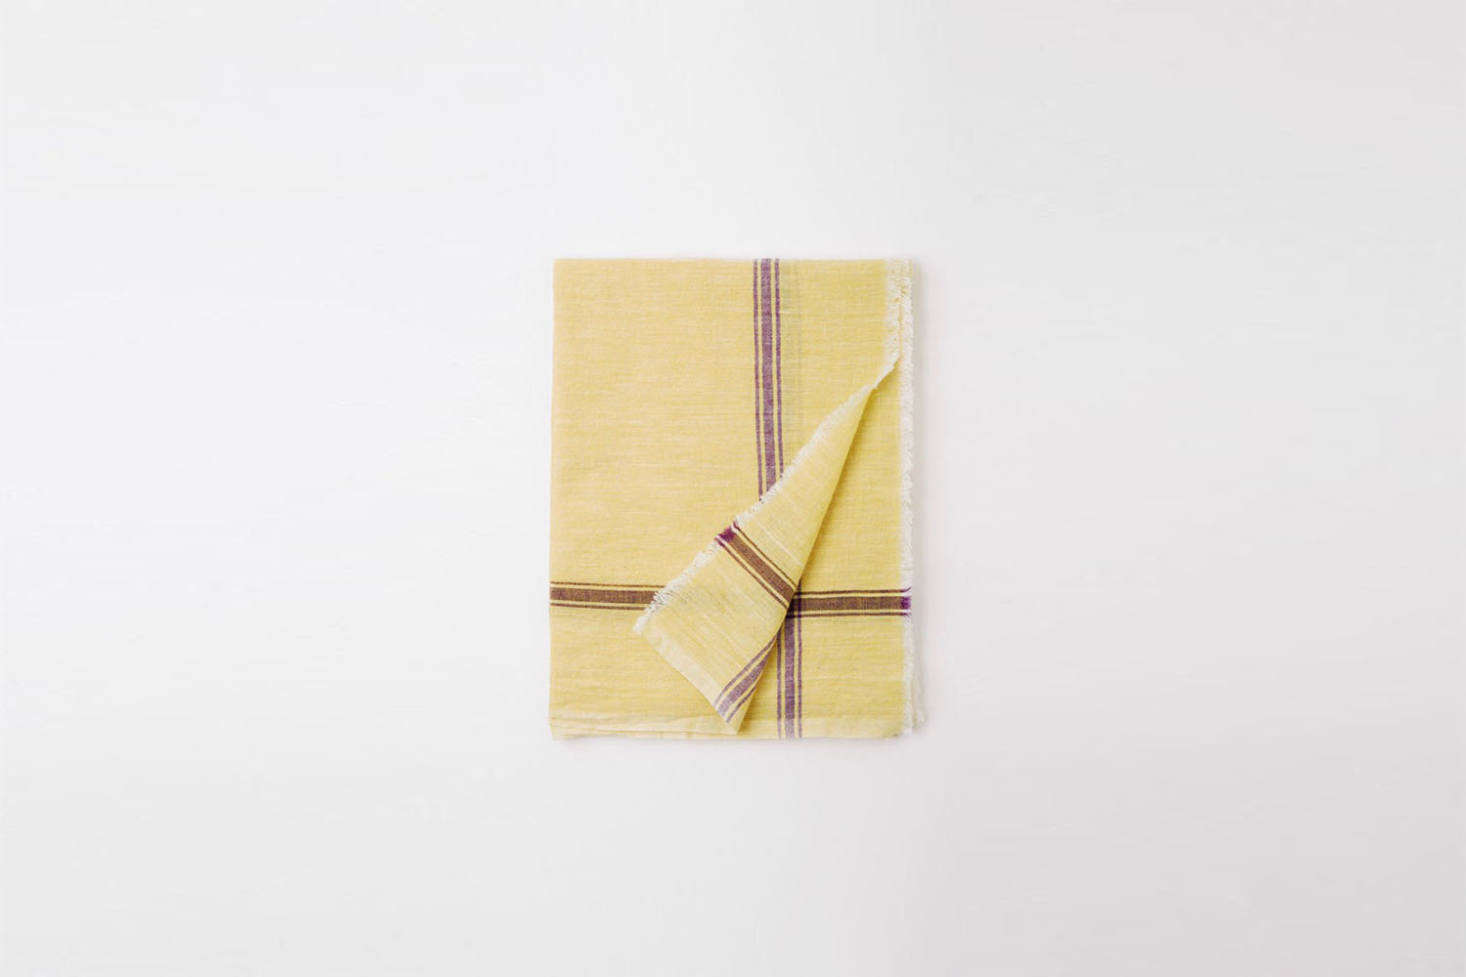 The towel hung next to the sink is an Auntie Oti Woven Towel. Different color combinations of patterned towels are available, starting at $36 each from Auntie Oti.